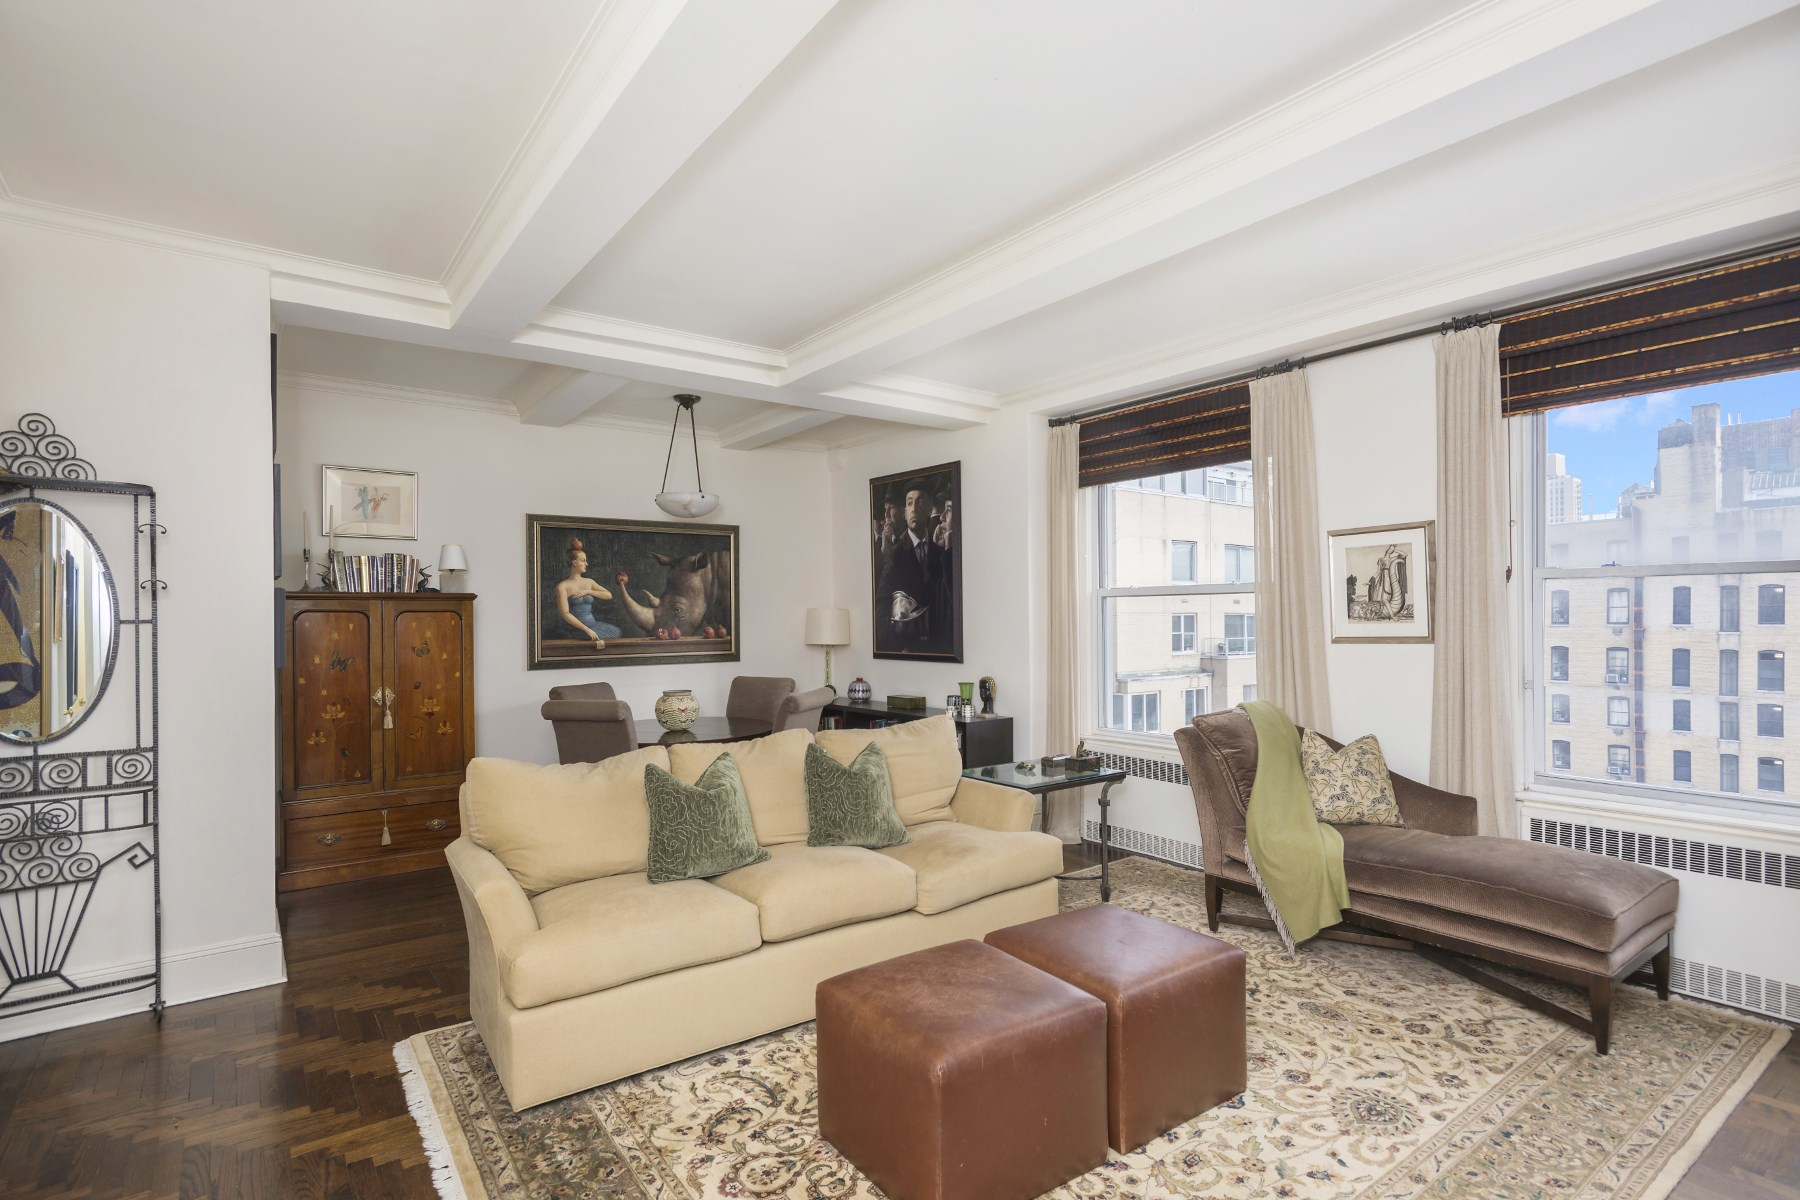 Co-op for Sale at Charm, Charm, Charm 1010 Fifth Avenue Apt 10E Upper East Side, New York, New York, 10028 United States